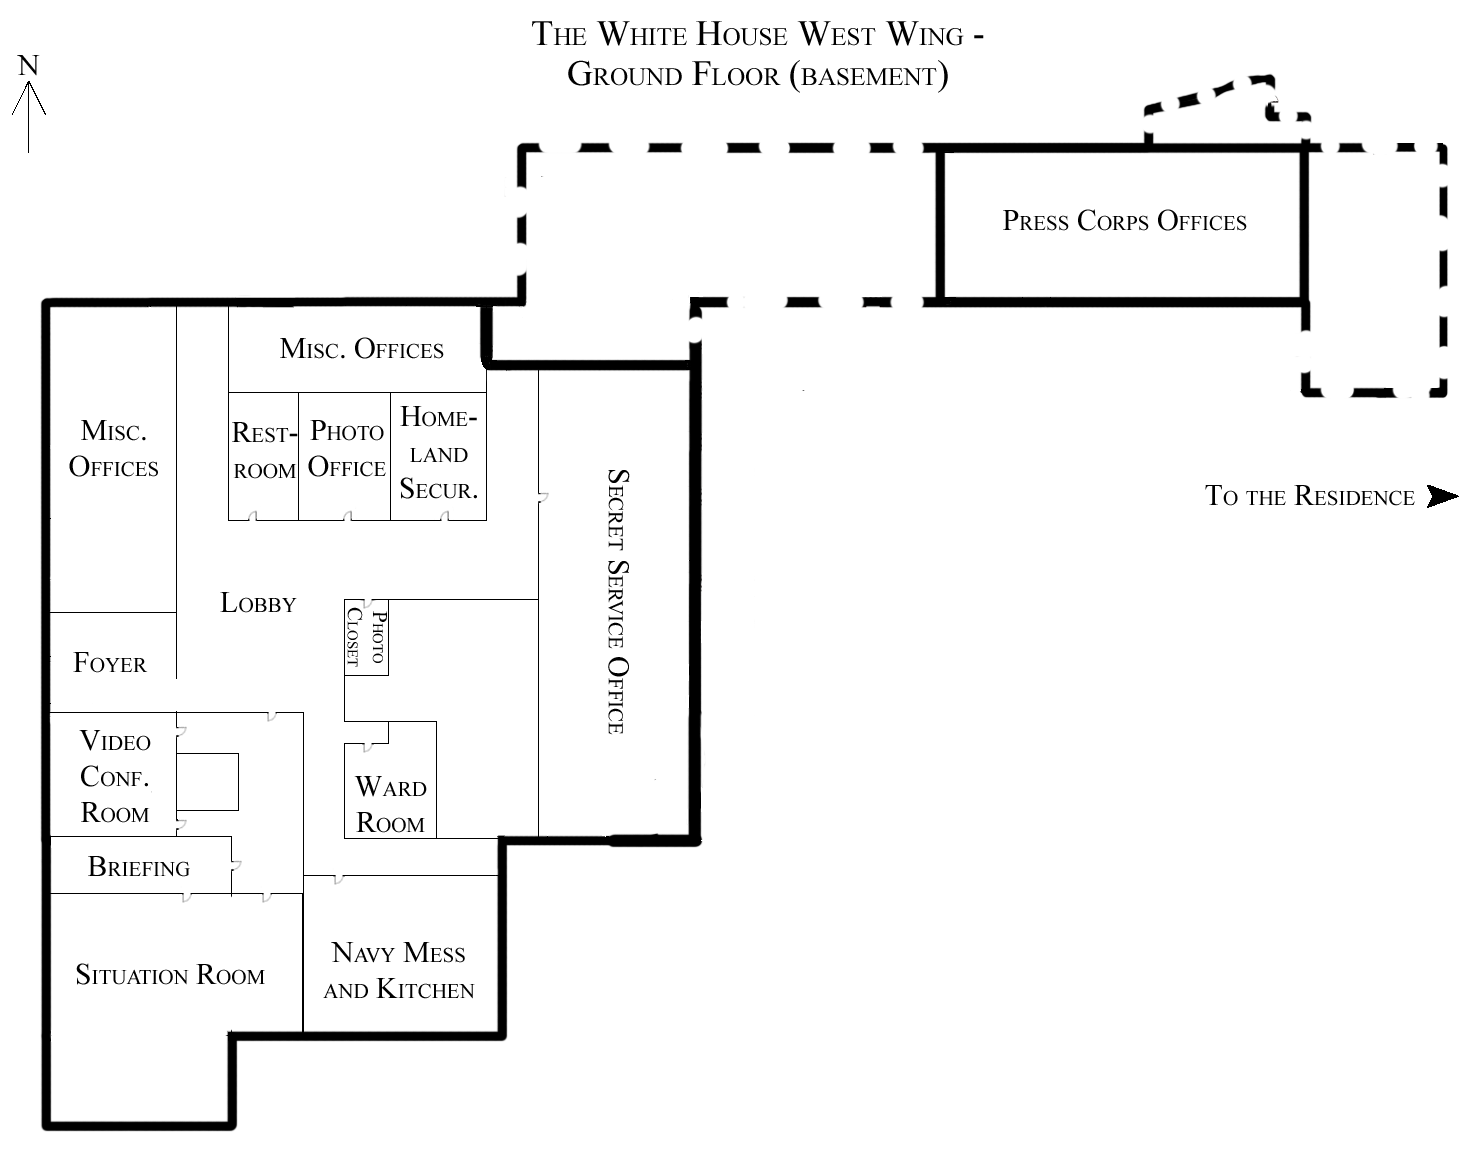 File:White House West Wing Ground Floor.png